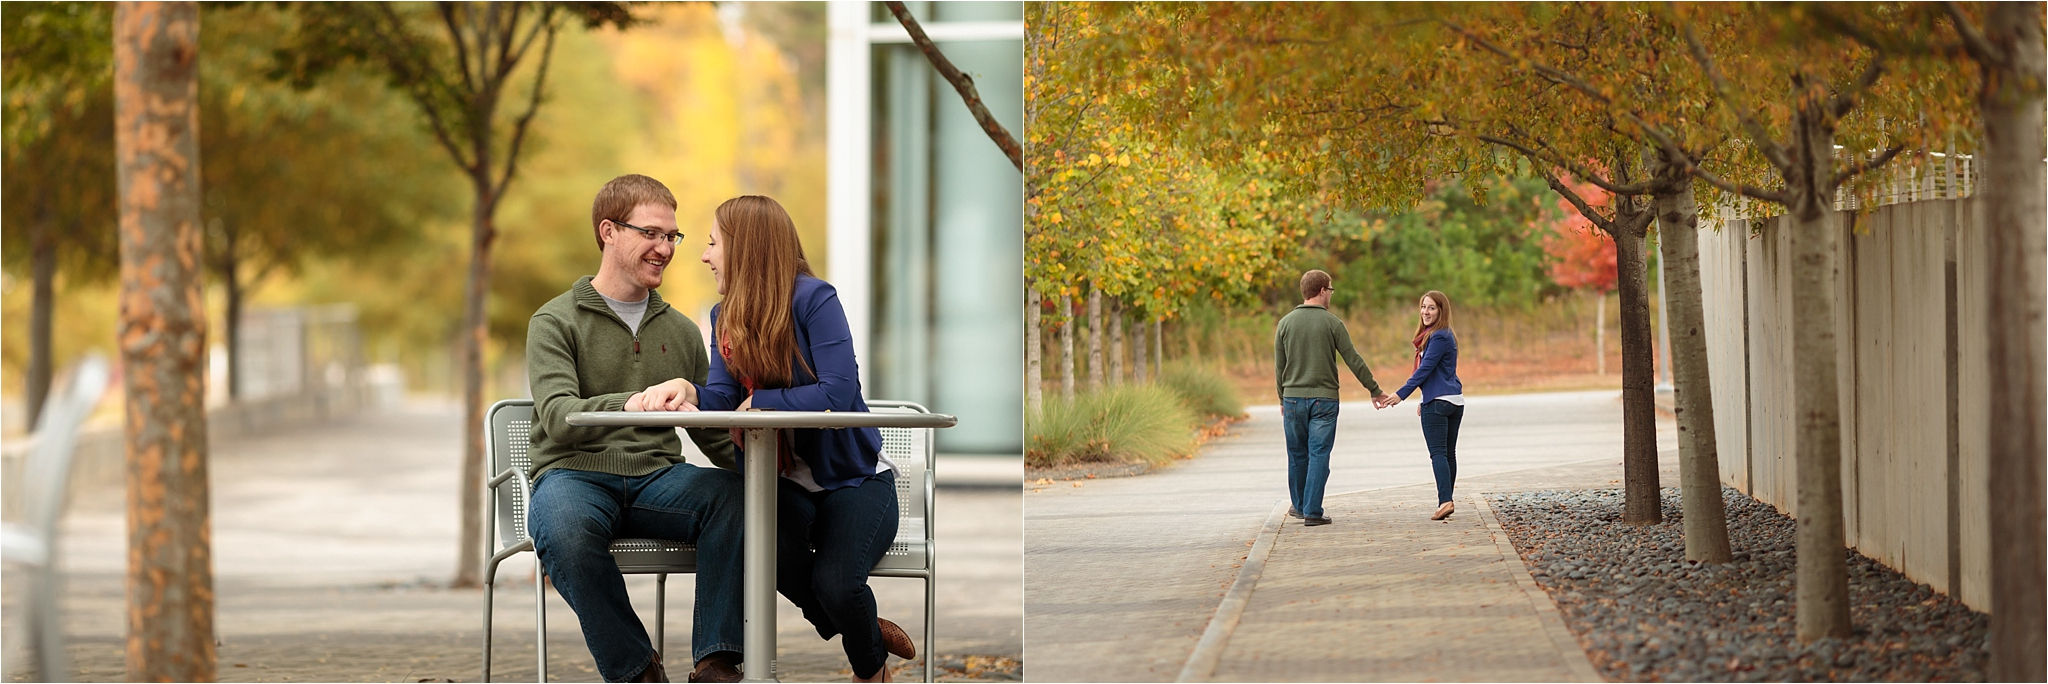 greenville-engagement-session-fall-colors-6_blog.jpg